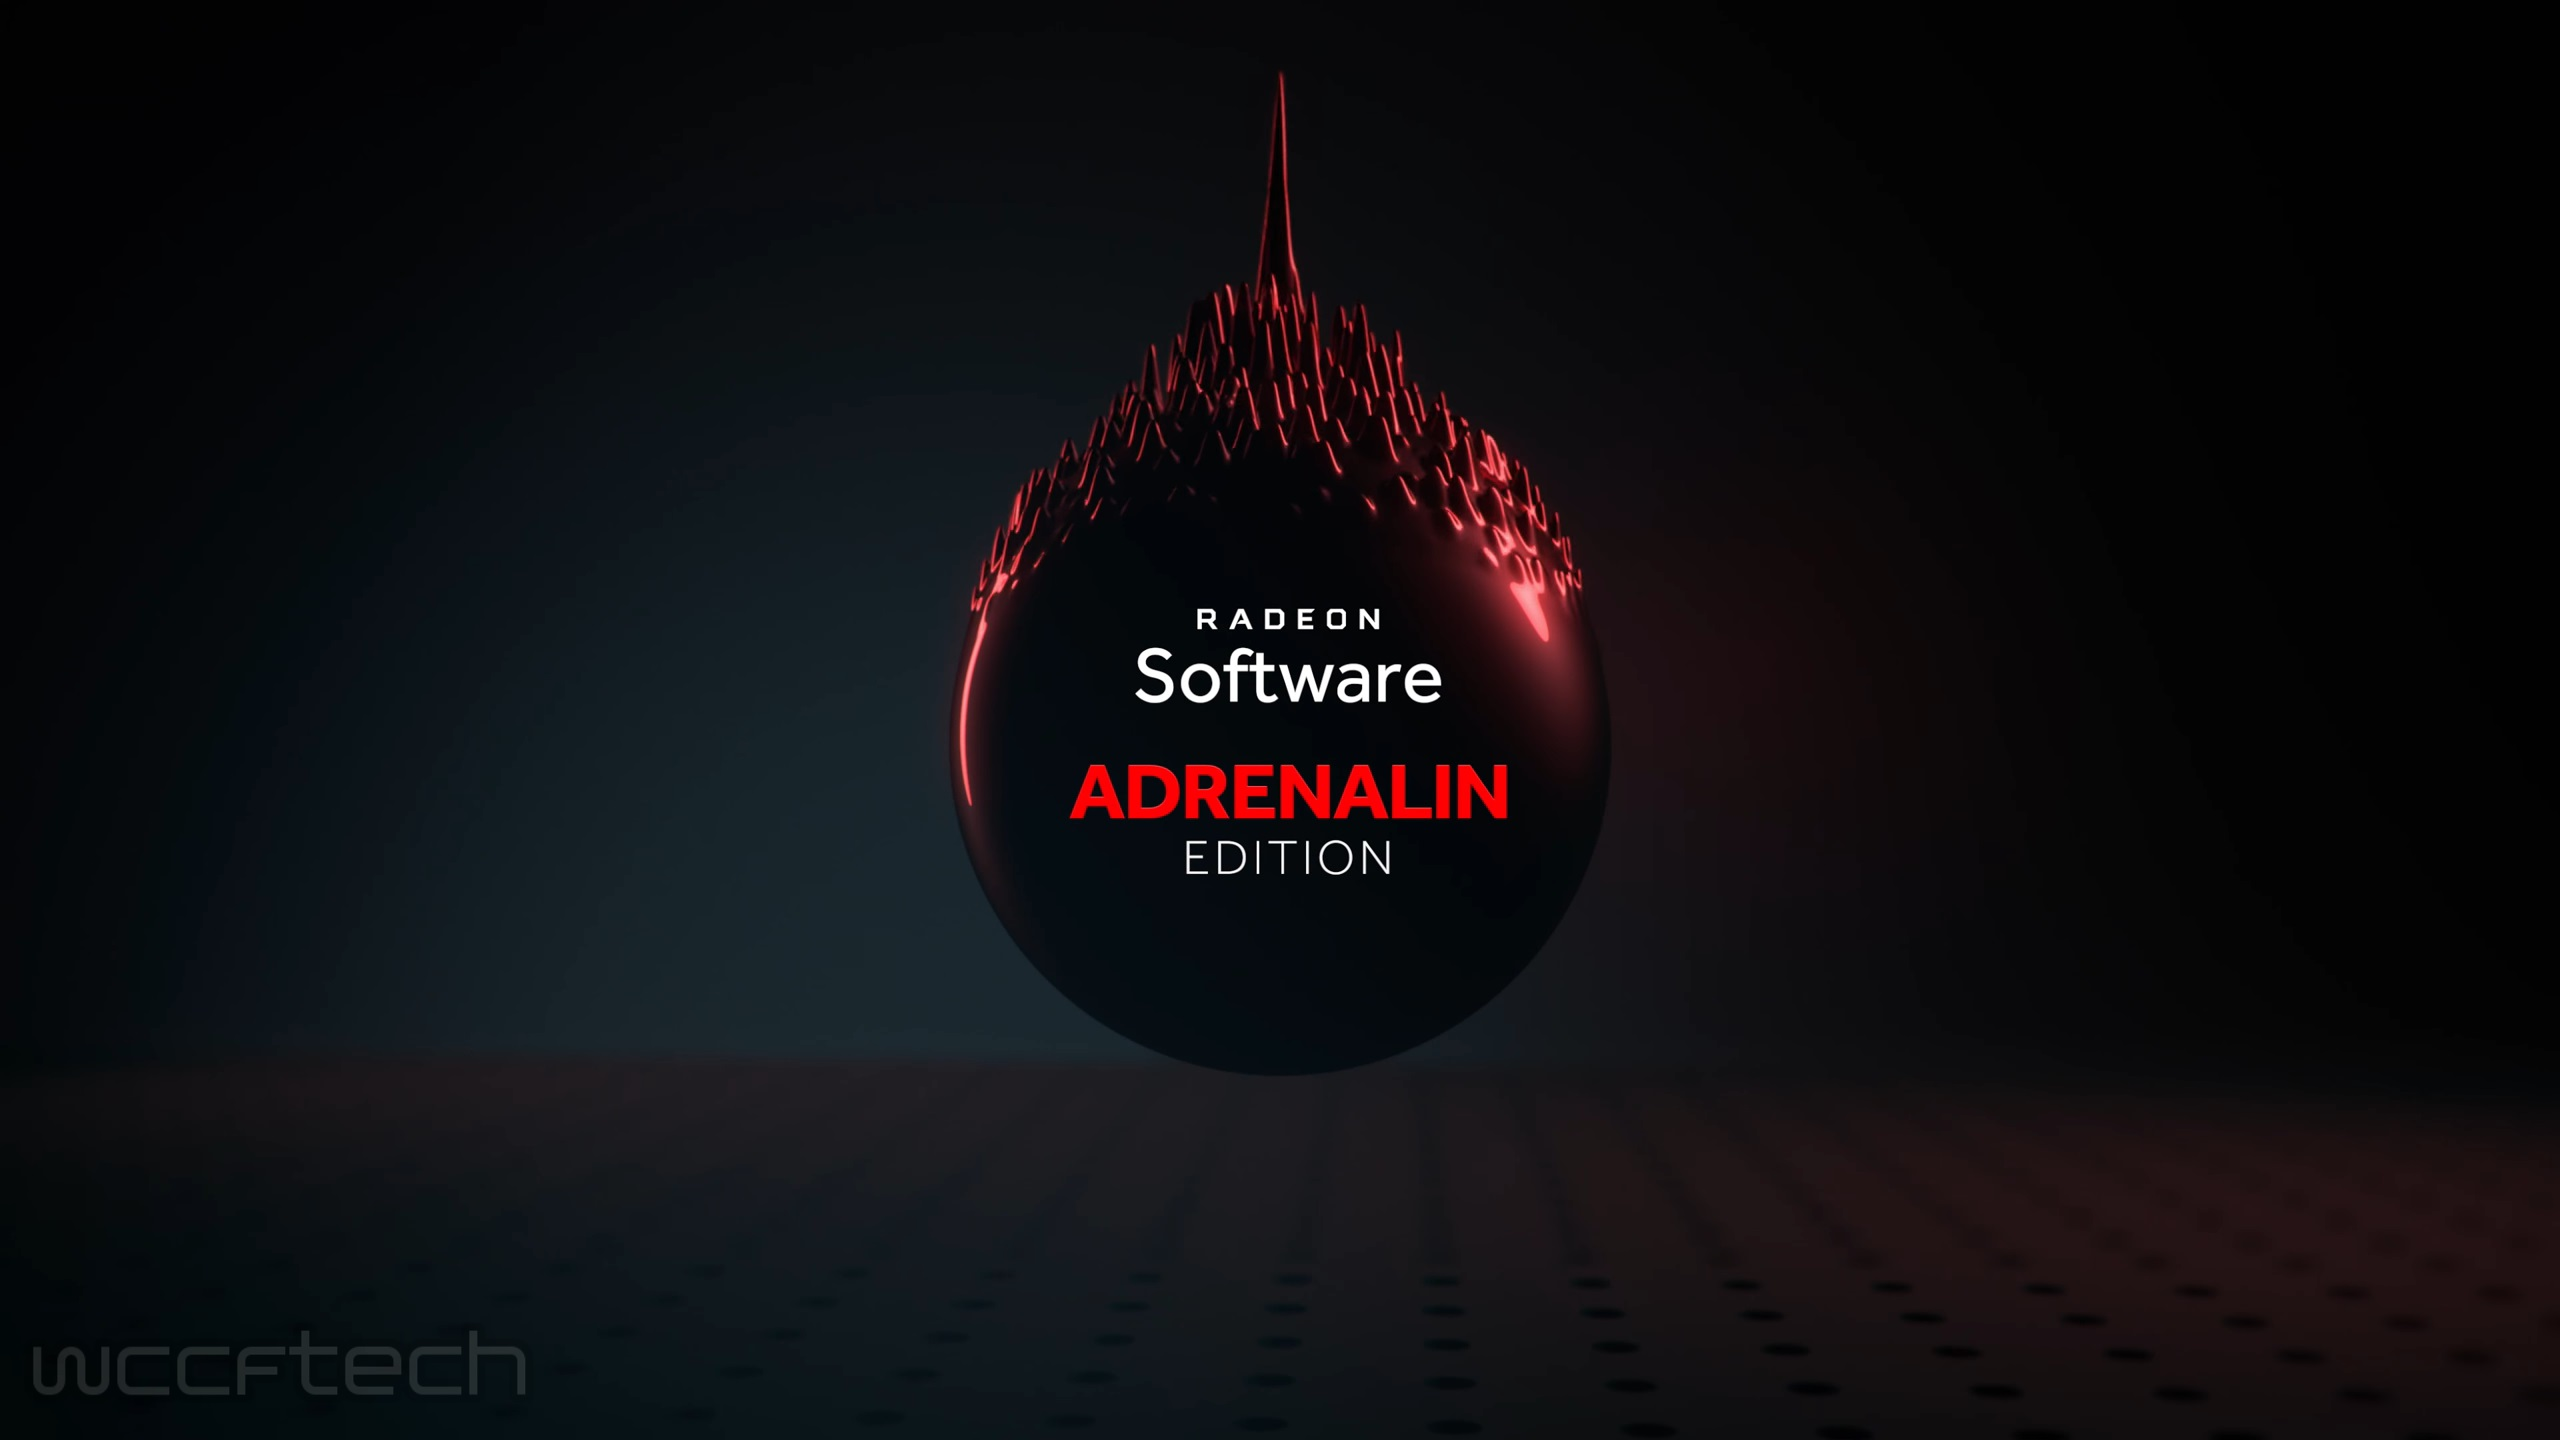 Amd Radeon Adrenalin 20 5 1 Driver Available Now For Download Adds Support For Windows 10 May 2020 Update